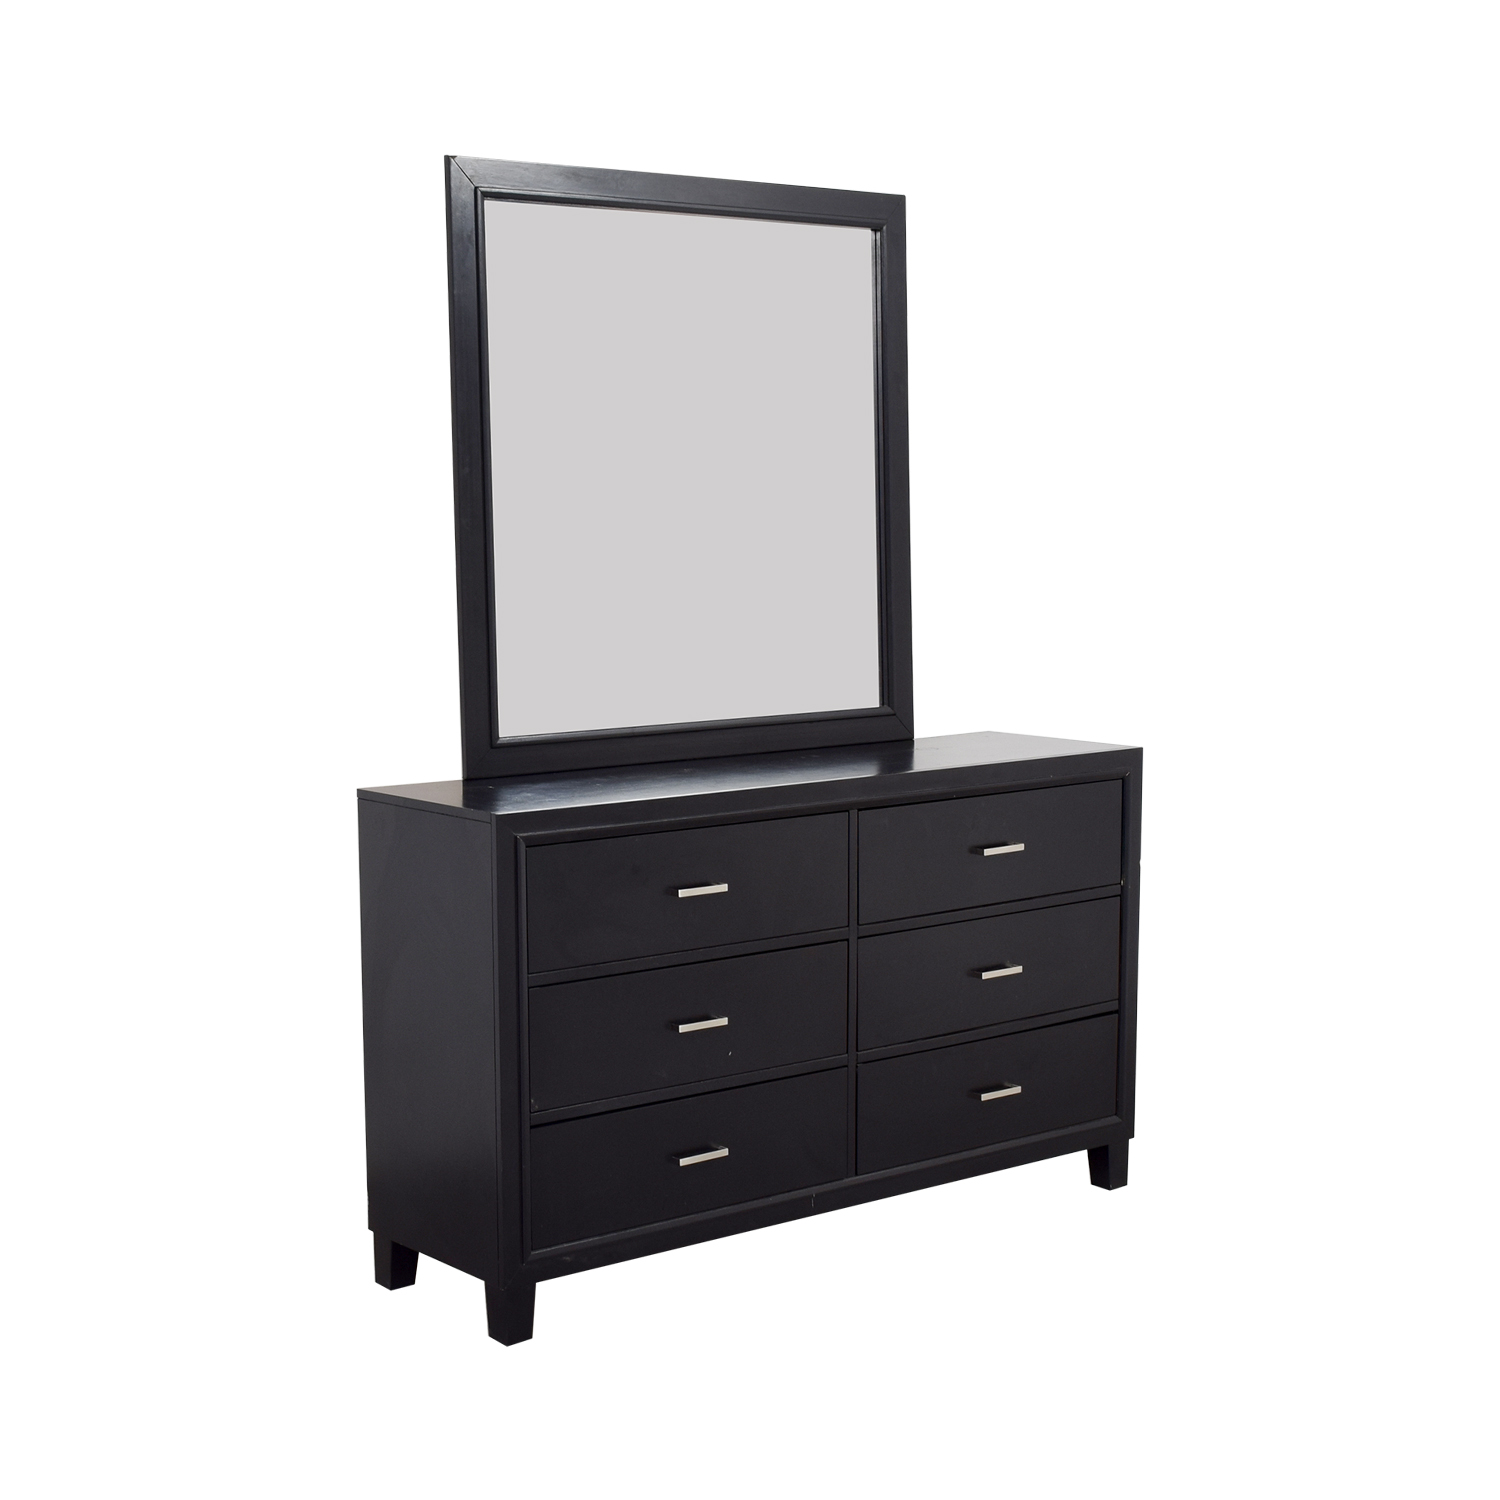 shop Six-Drawer Dresser with Mirror Dressers